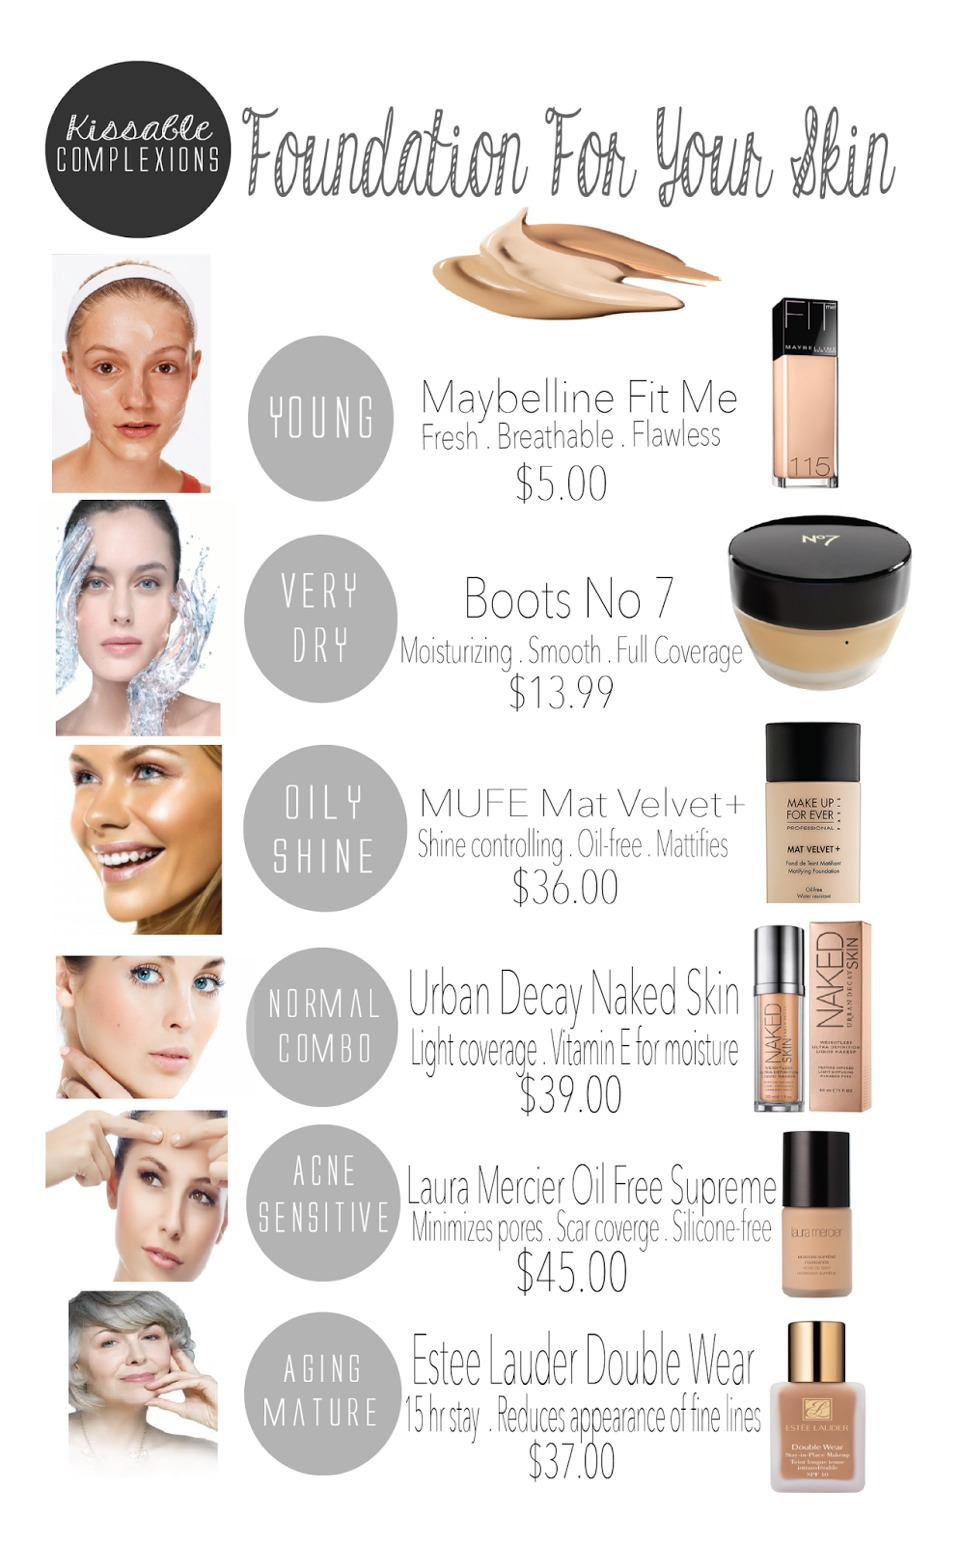 Know which types of foundation are best for your skin type